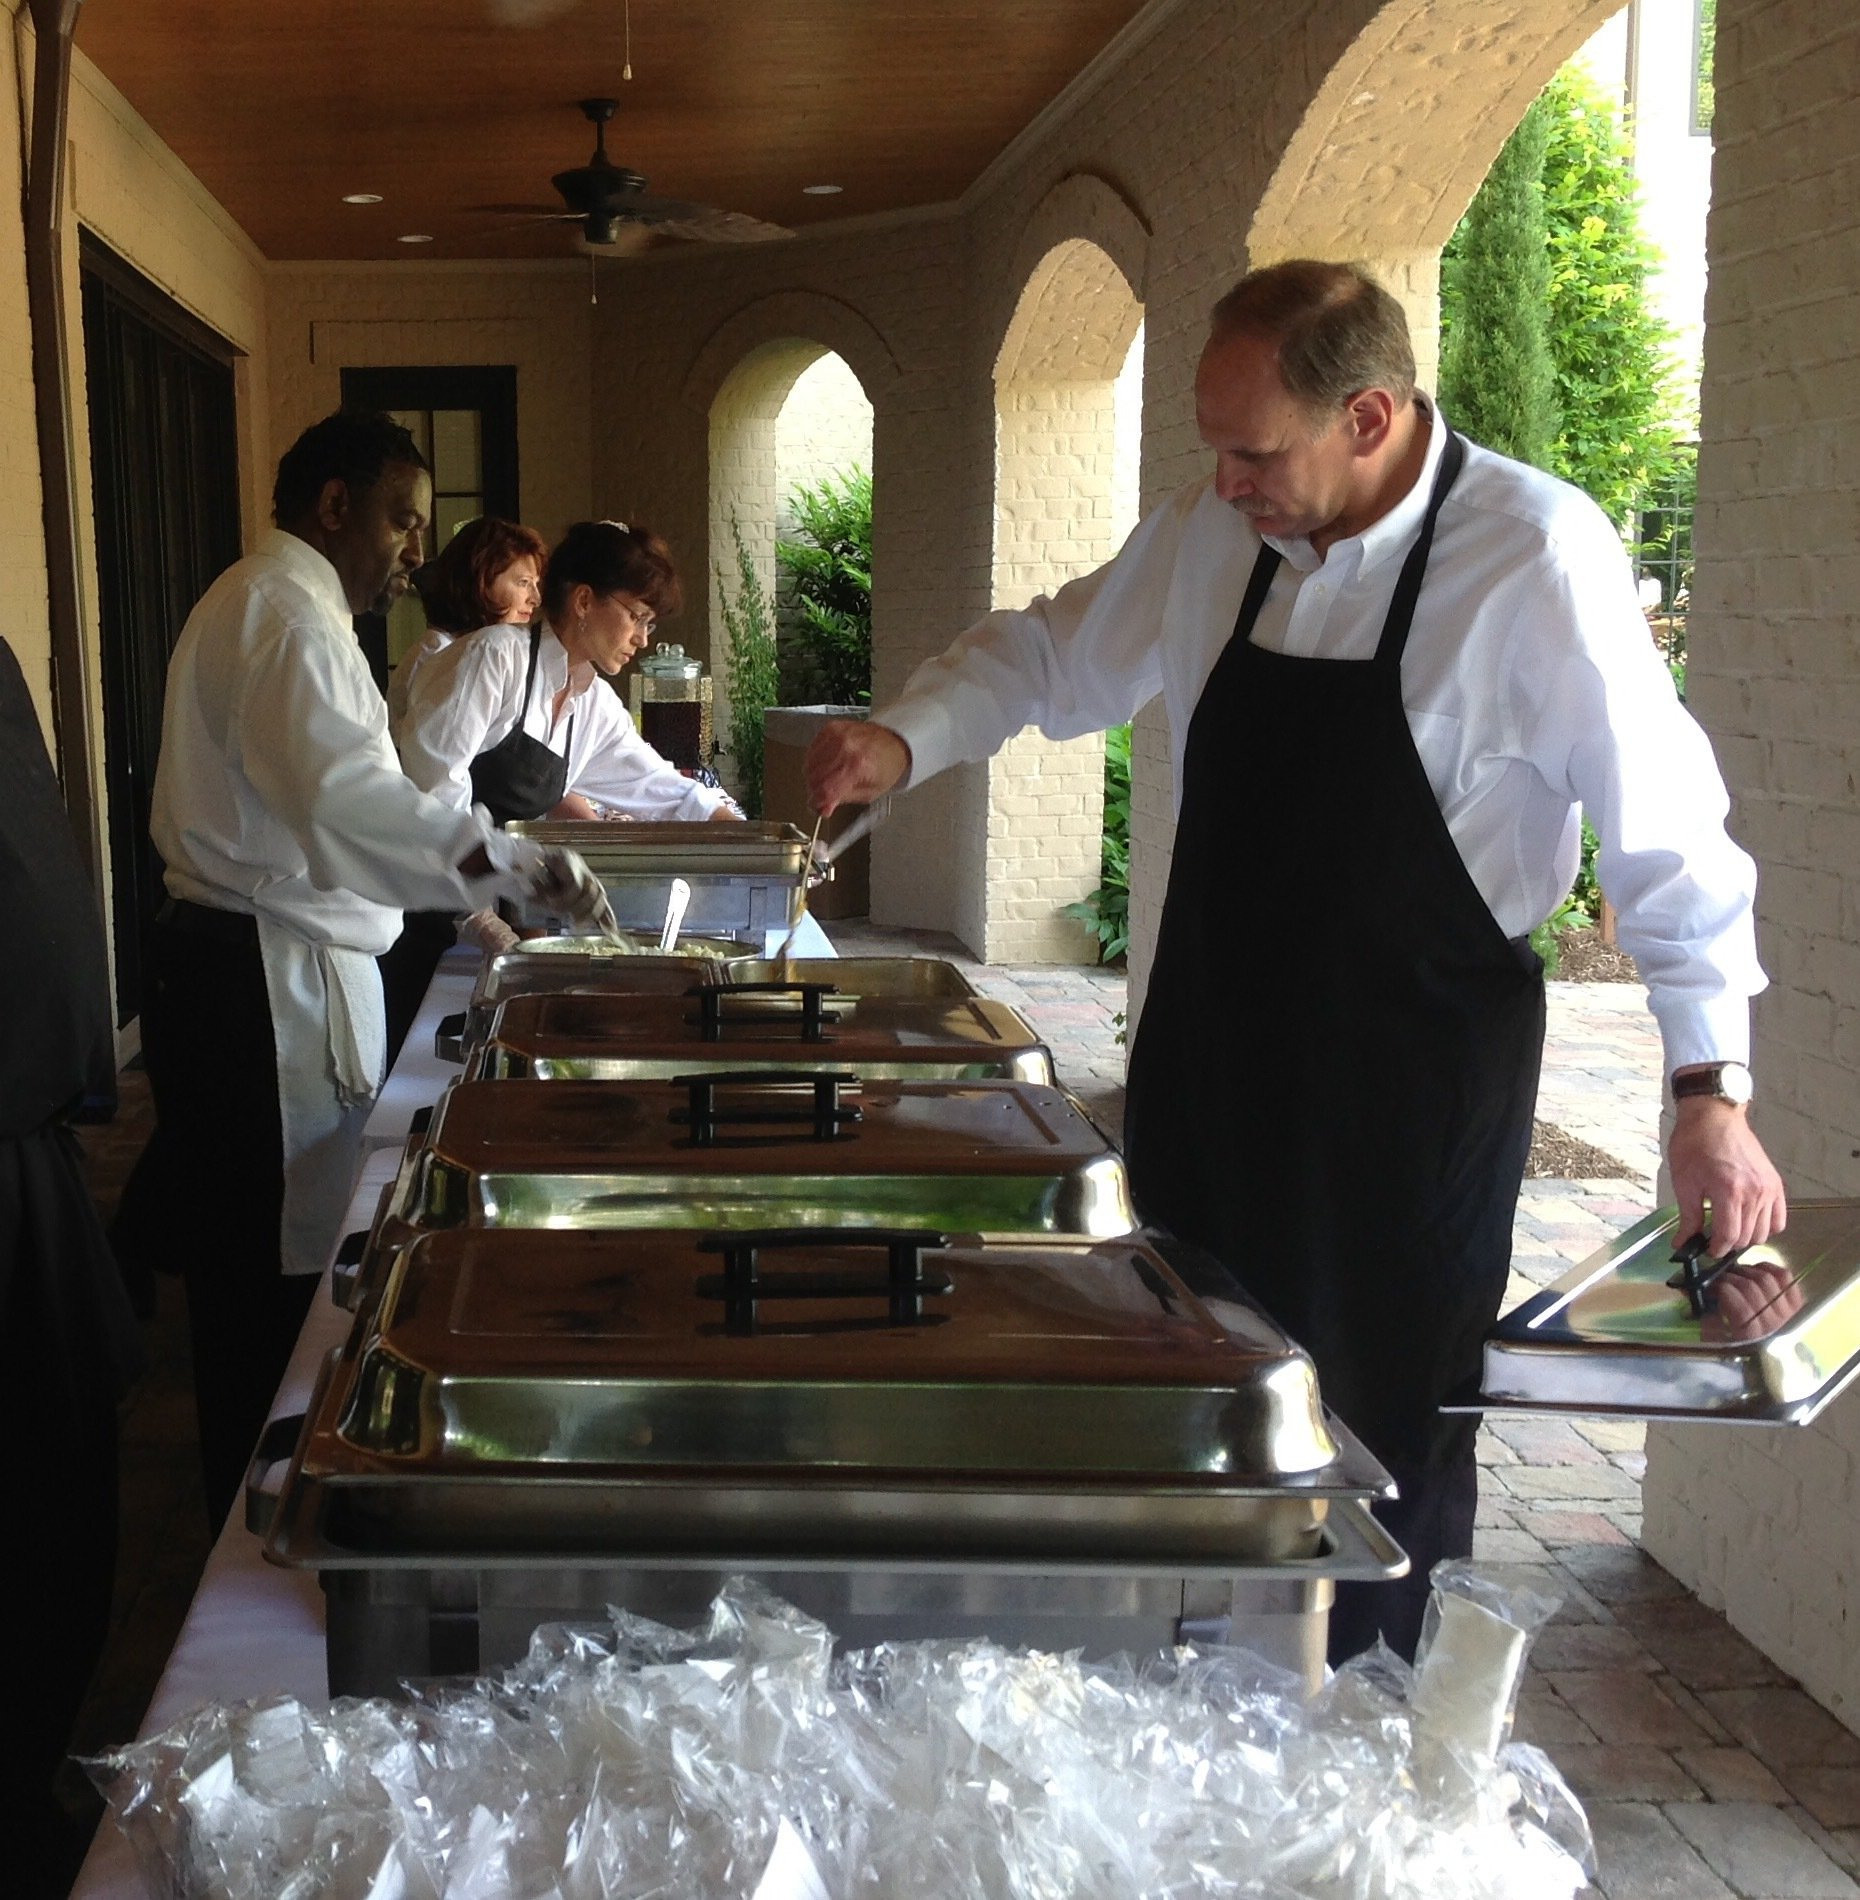 Carter brothers's staff organizing the catering in High Point, NC